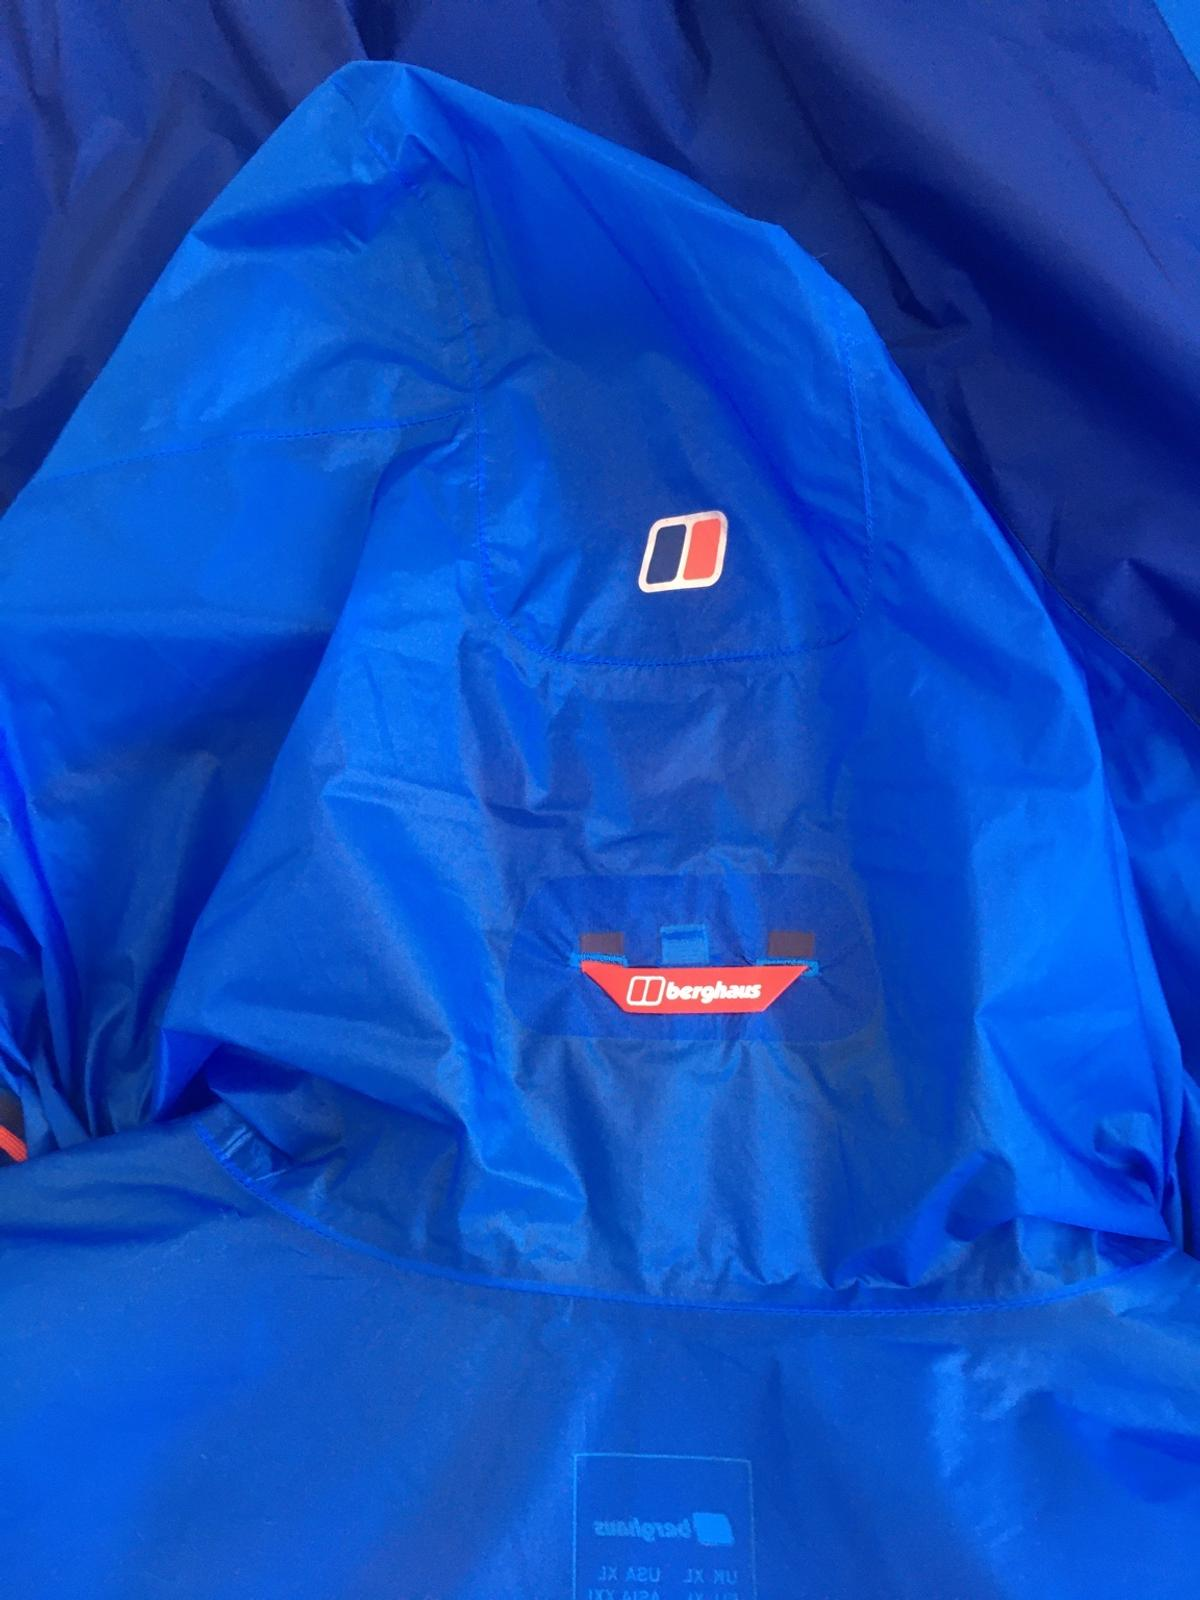 Worn once light wait jacket sizeXL blue whit red strip on cuffs bottom and on zips has to zips one is a pocket shown on pic logs on hood has Antigua design and development on zip partoff a key spout light on bottom off let side Hyde shell hyper on bottom of right arm like new